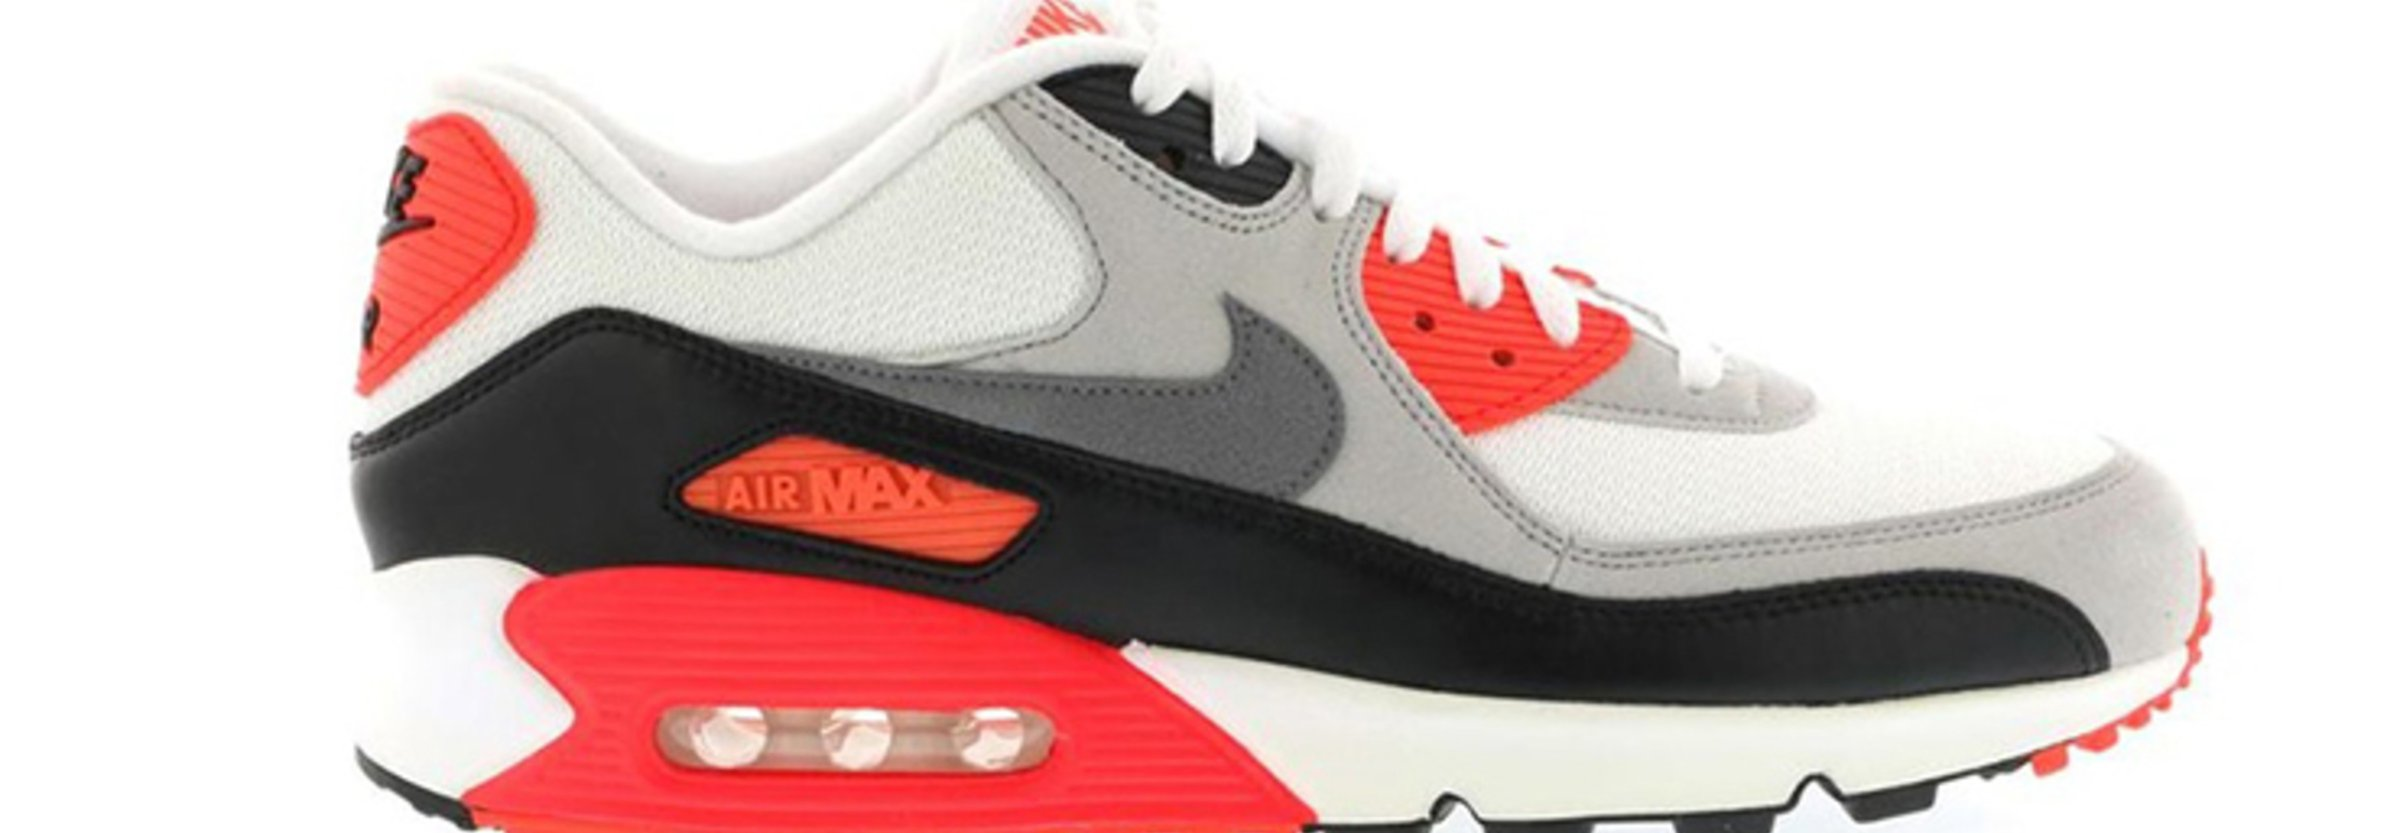 7cfd5a4d4aa Material Matters: The Evolution of Air in Sneakers THE ICONIC Edition